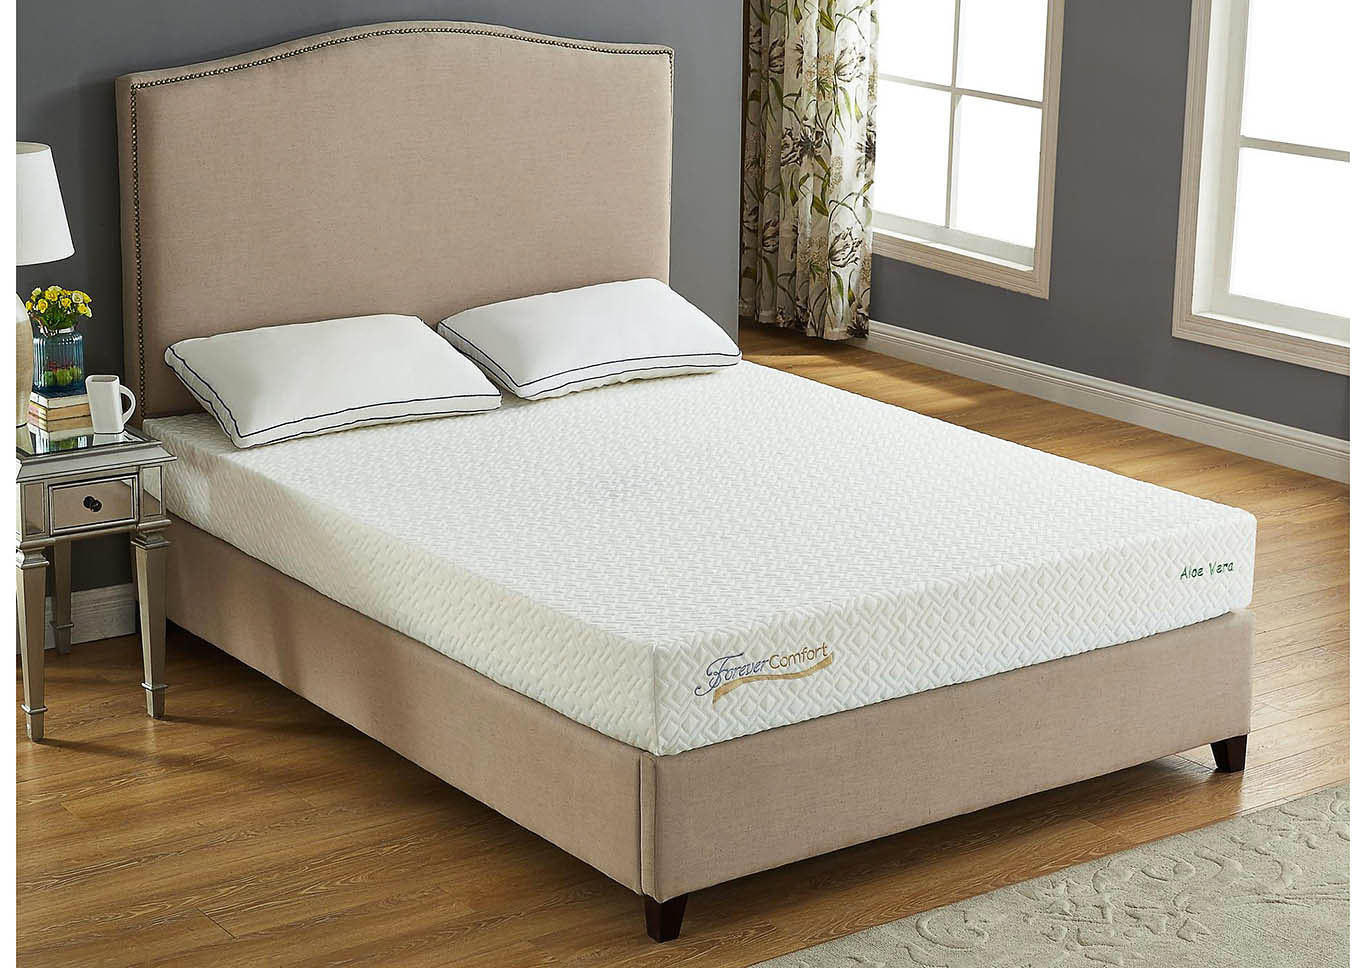 Roses Flooring And Furniture 8 Gel Memory Foam King Size Mattress